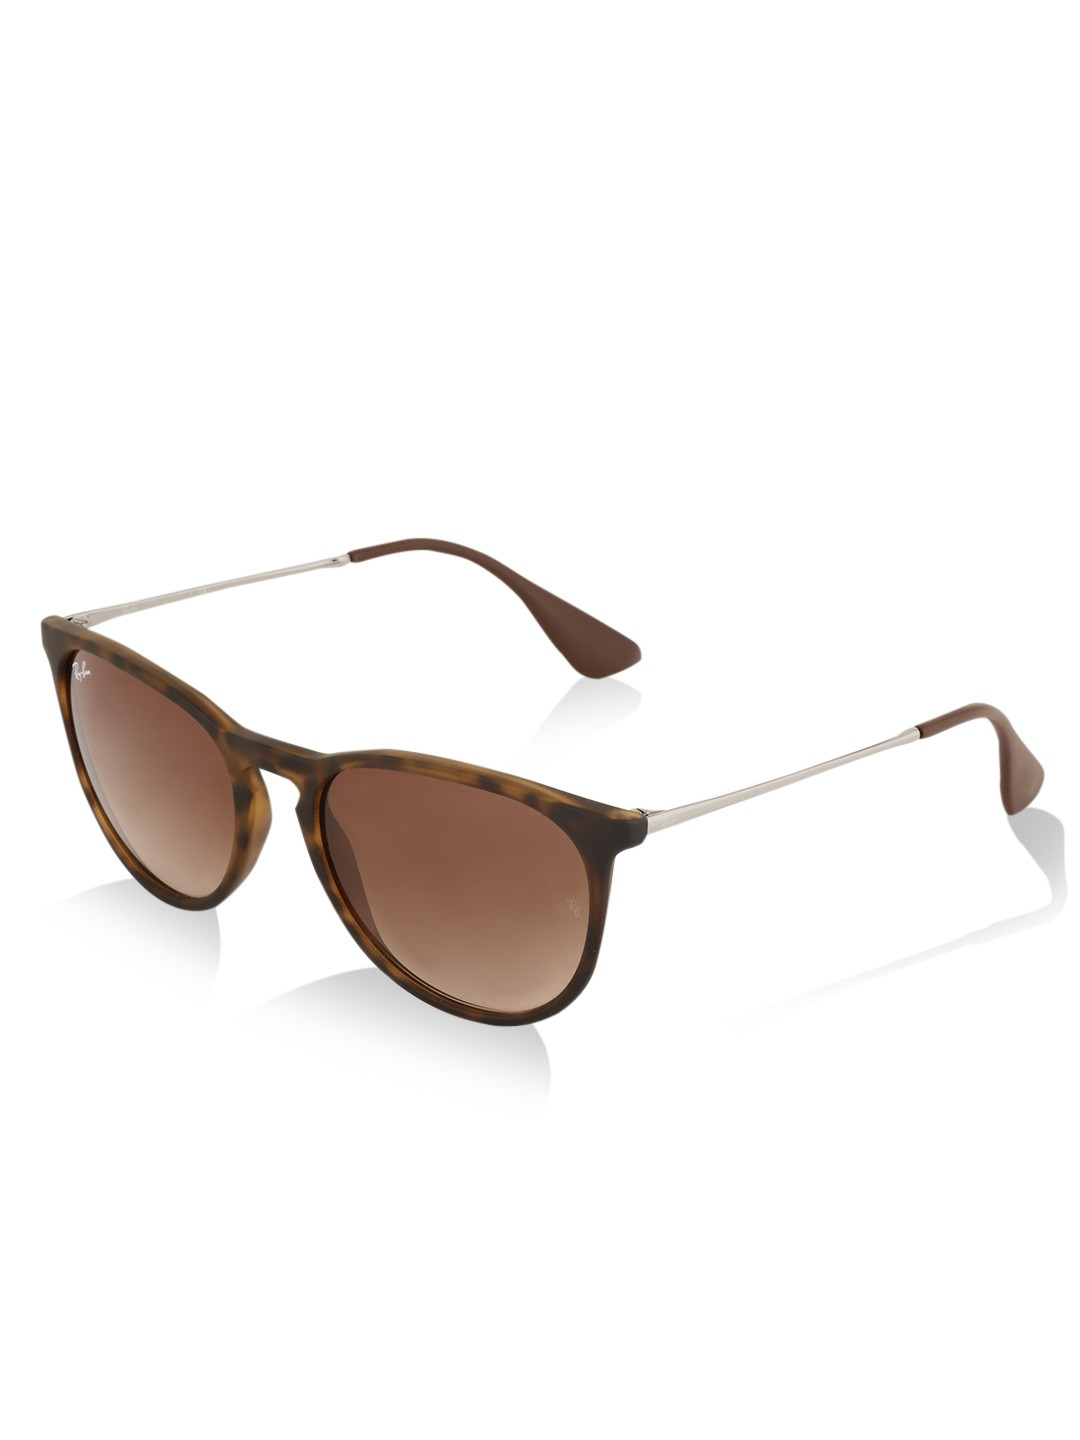 4a5396cfc4d Ray Ban Glasses India Models « Heritage Malta